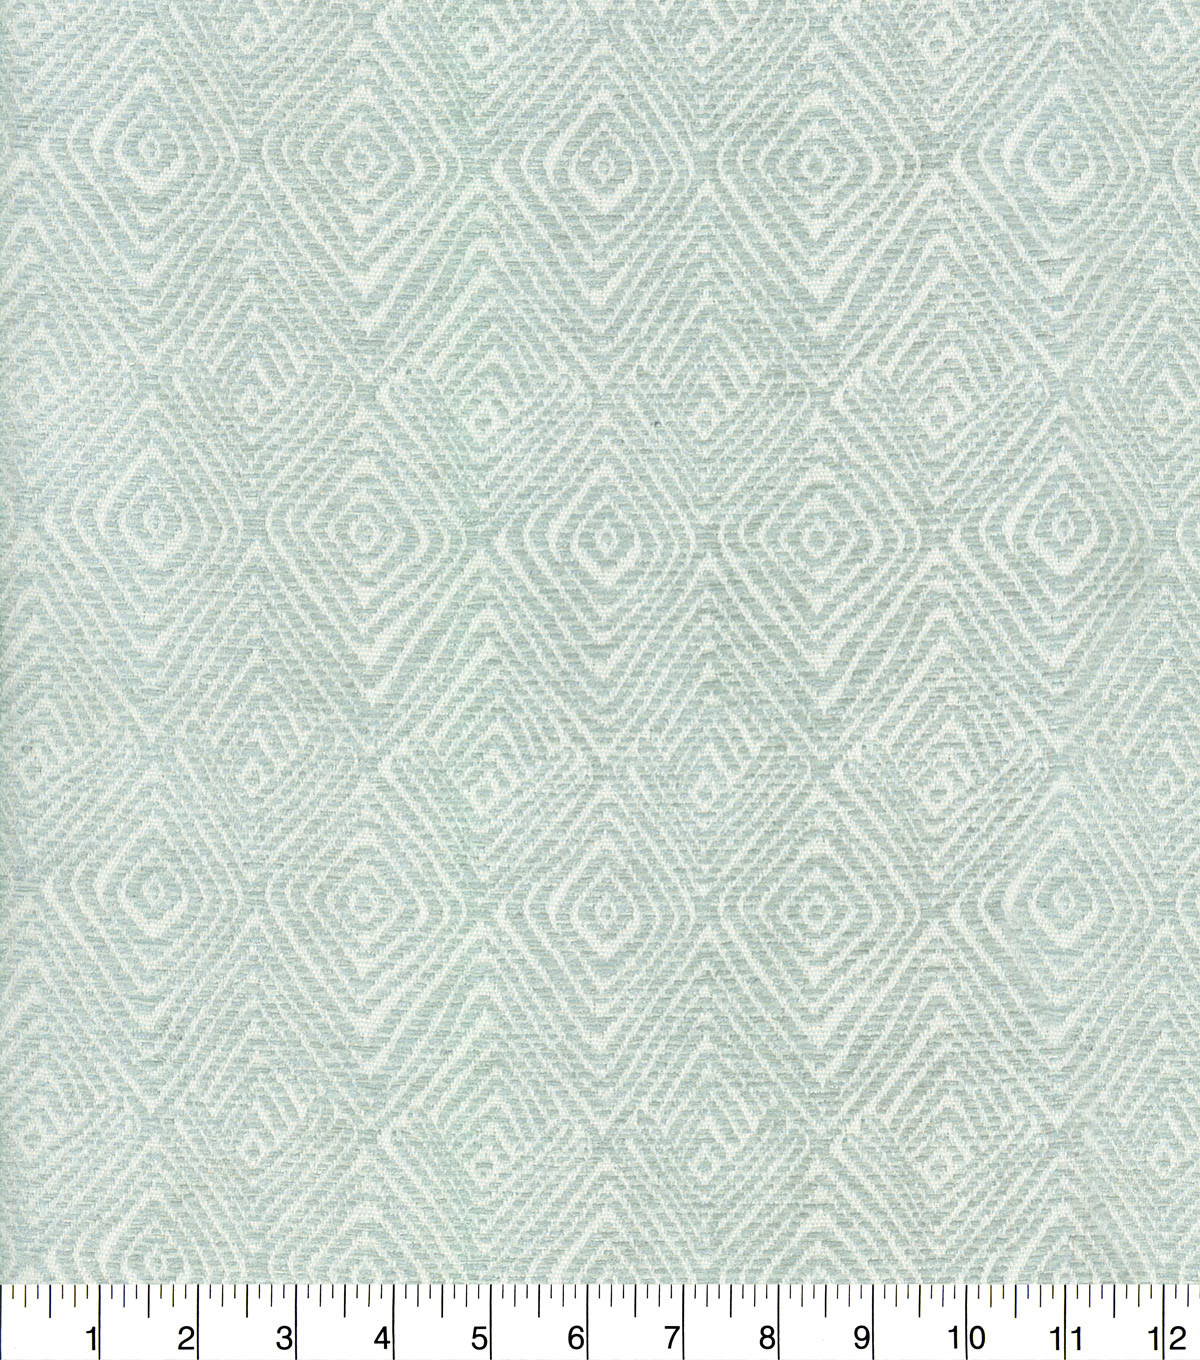 Kelly Ripa Home Upholstery Fabric 54''-Seaglass Set in Motion